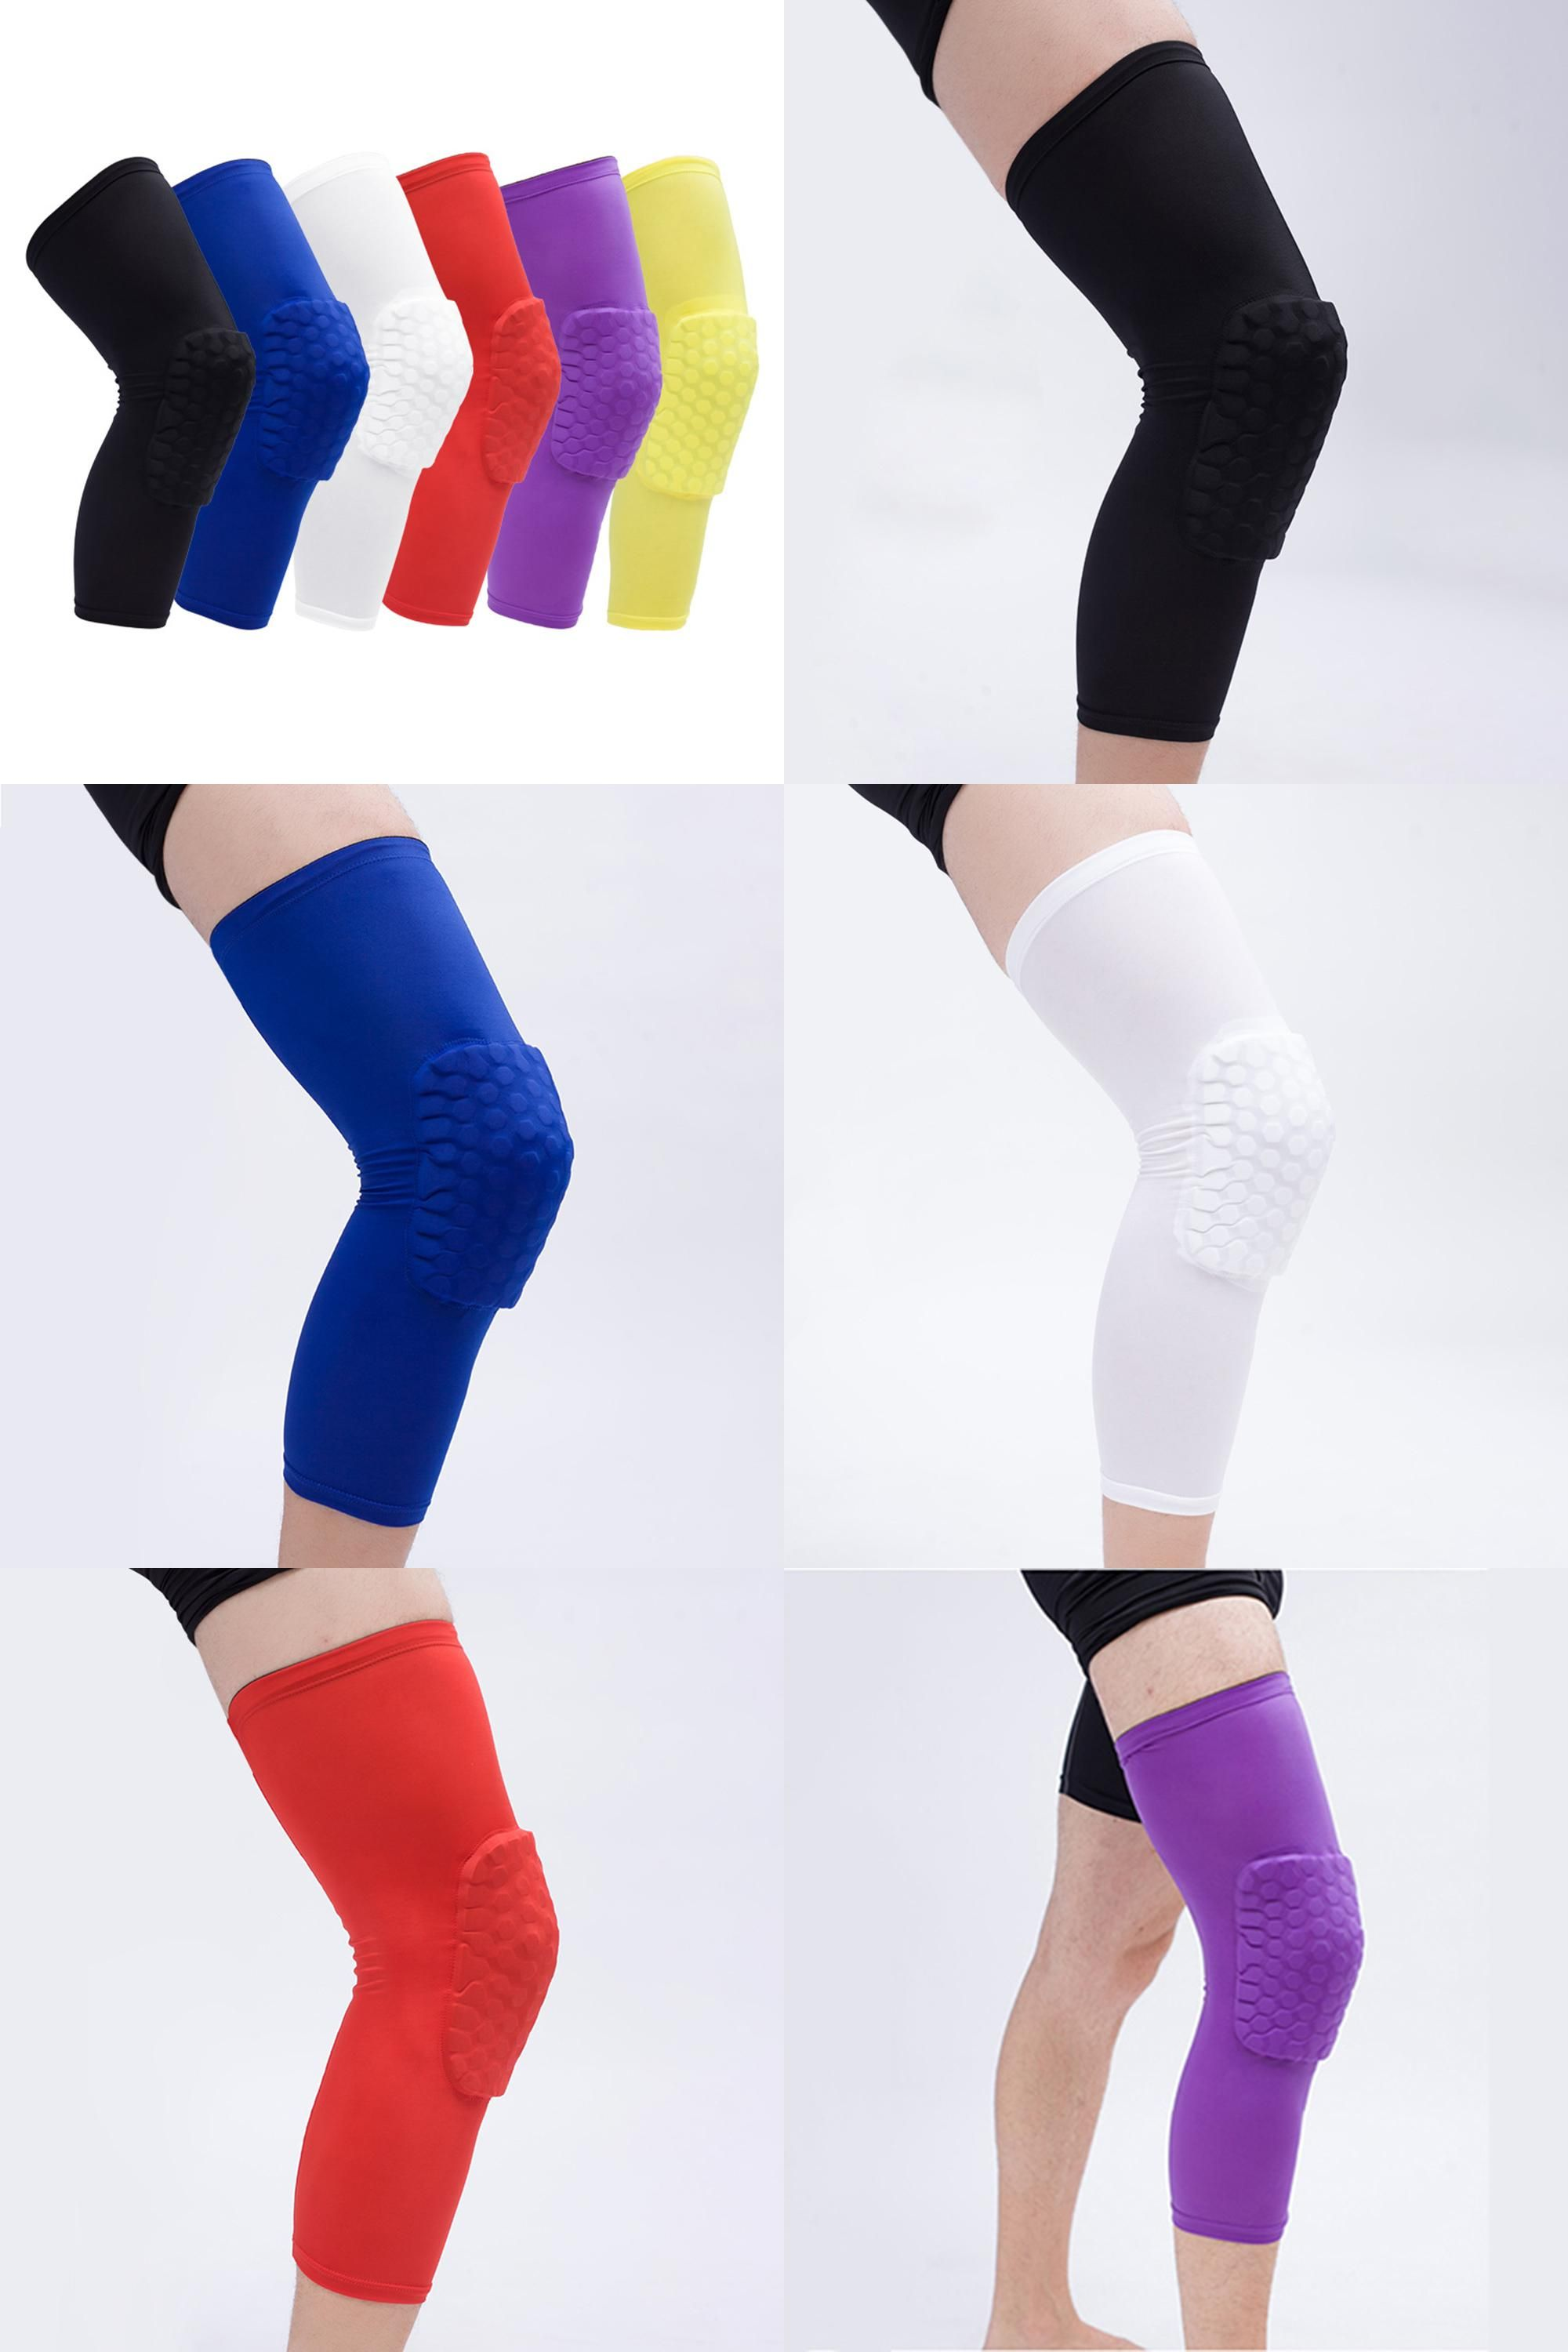 37f94a9f62 [Visit to Buy] Professional Honeycomb Sock Knee Pads Sport Safety  Basketball Breathable Knee Protectors Padded Knee Brace Compression Sleeve  #Advertisement